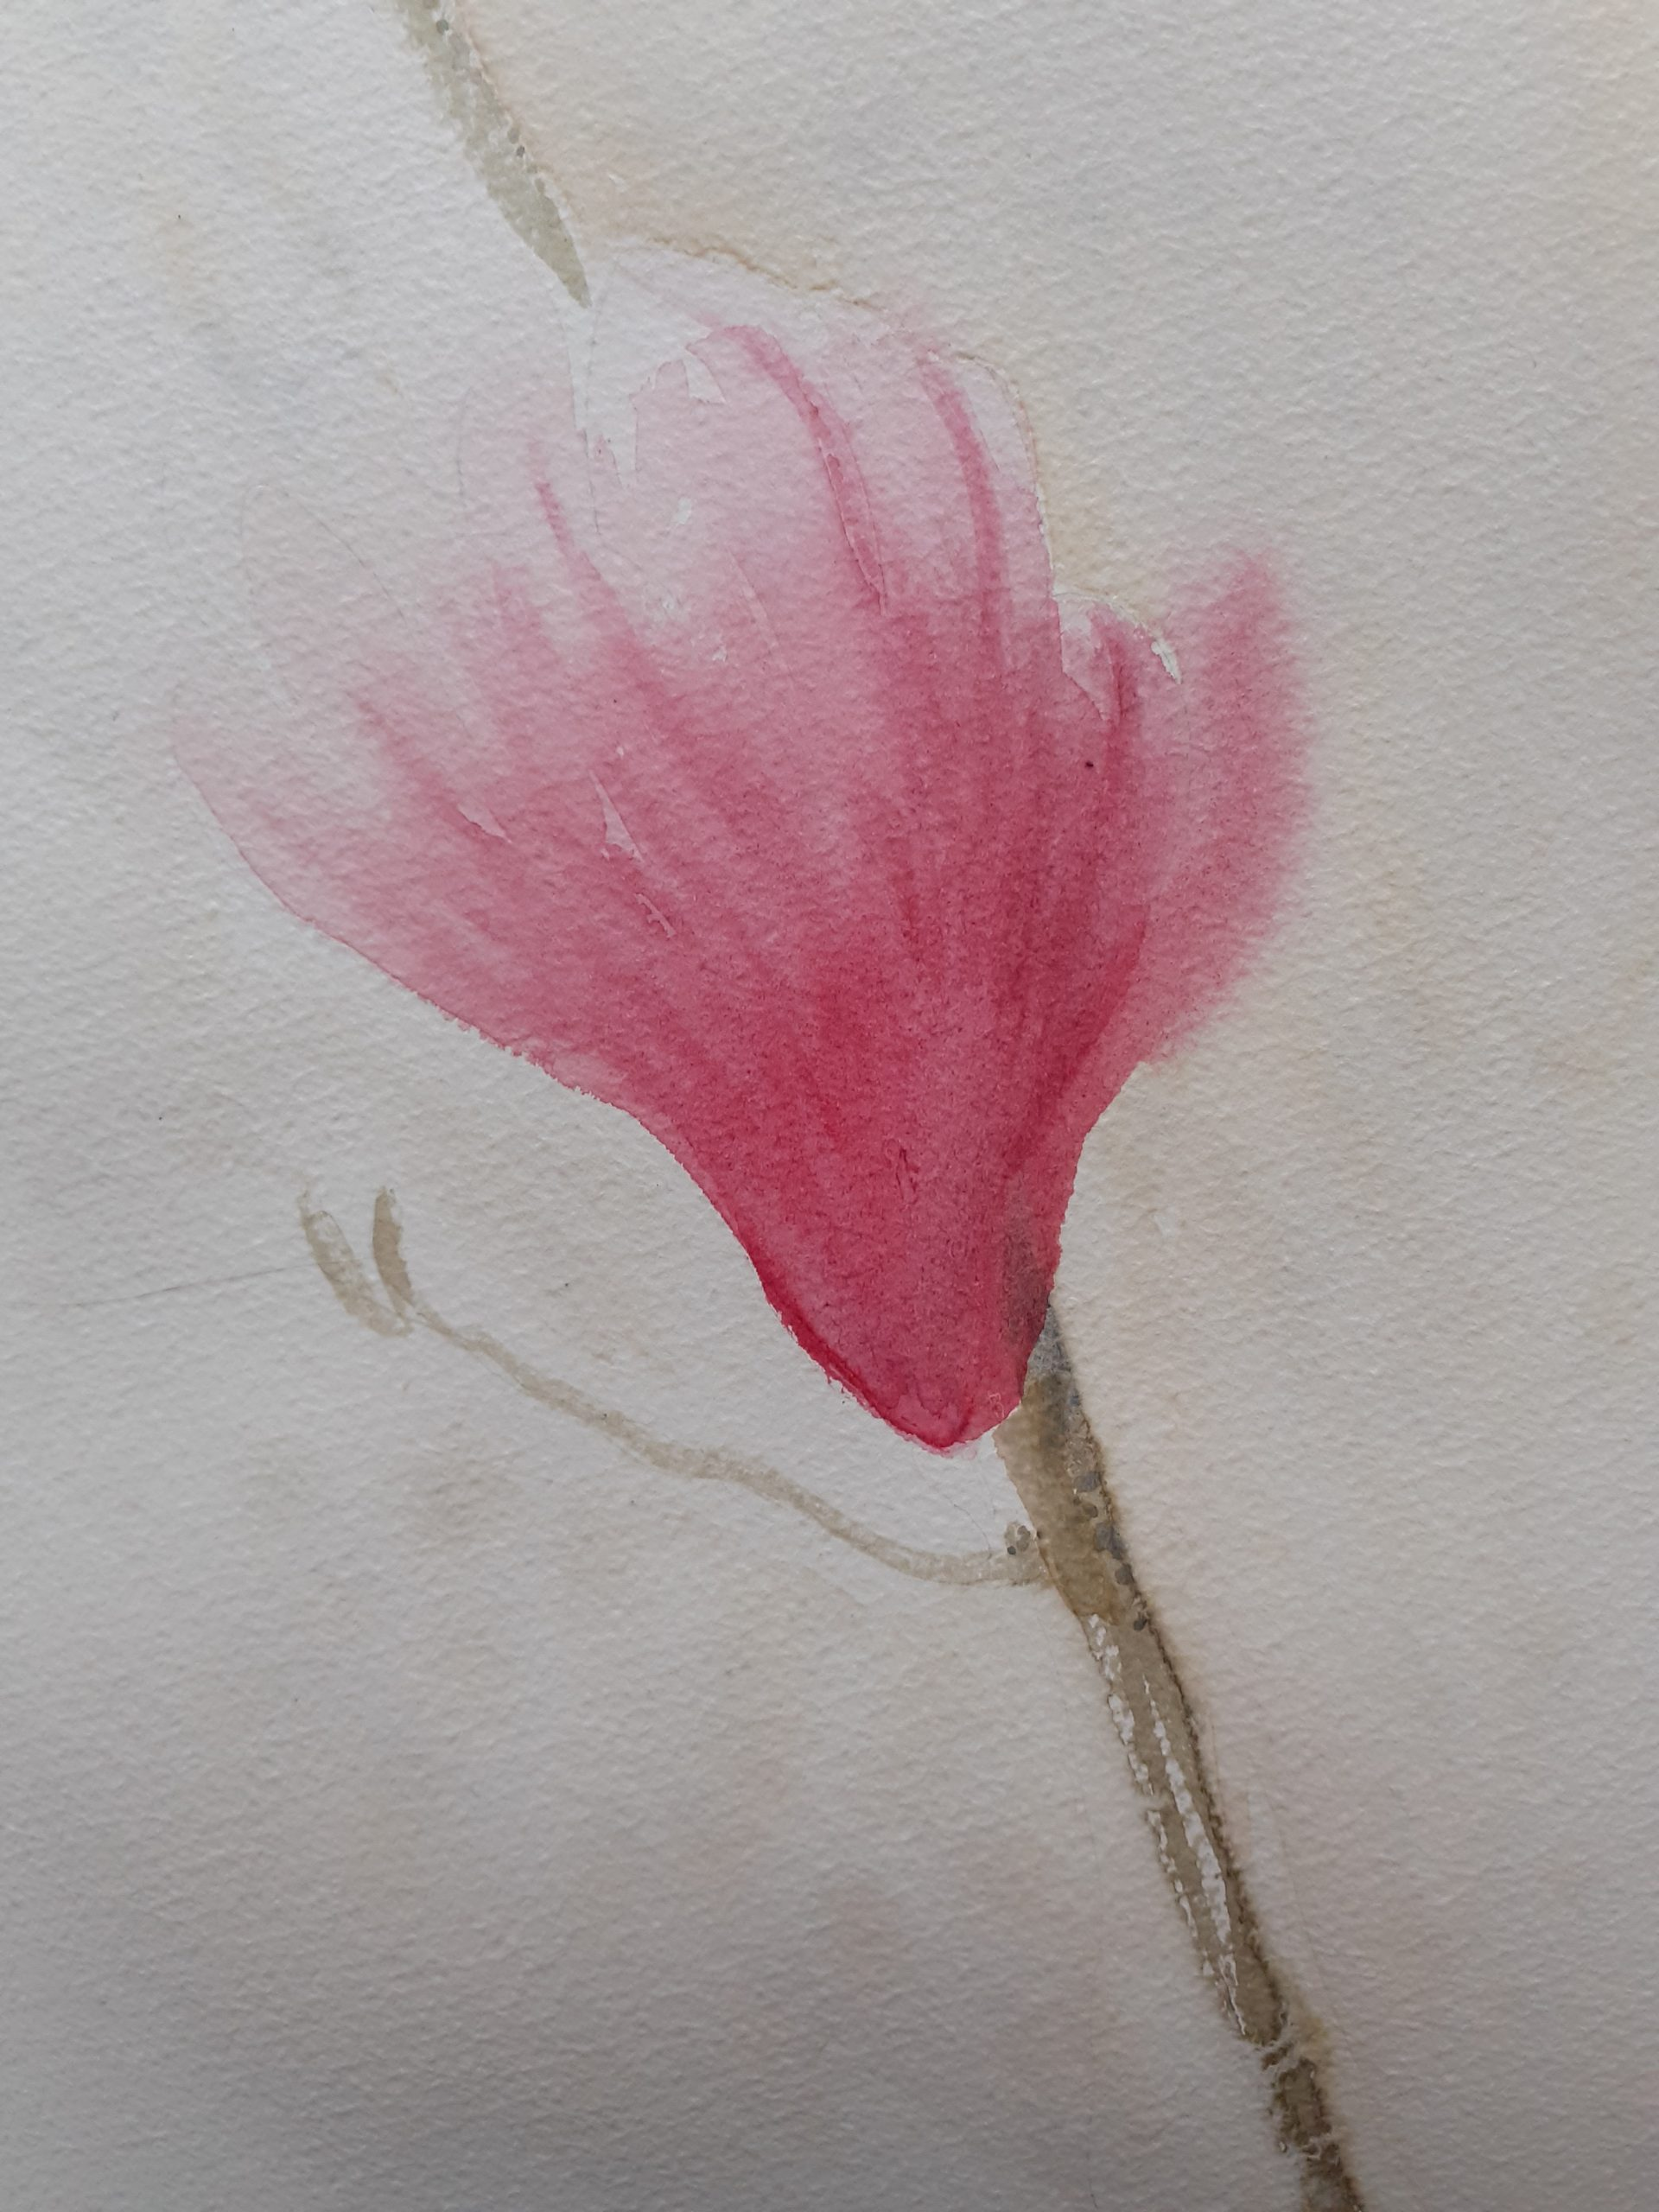 Magnolia watercolour painting by Alison